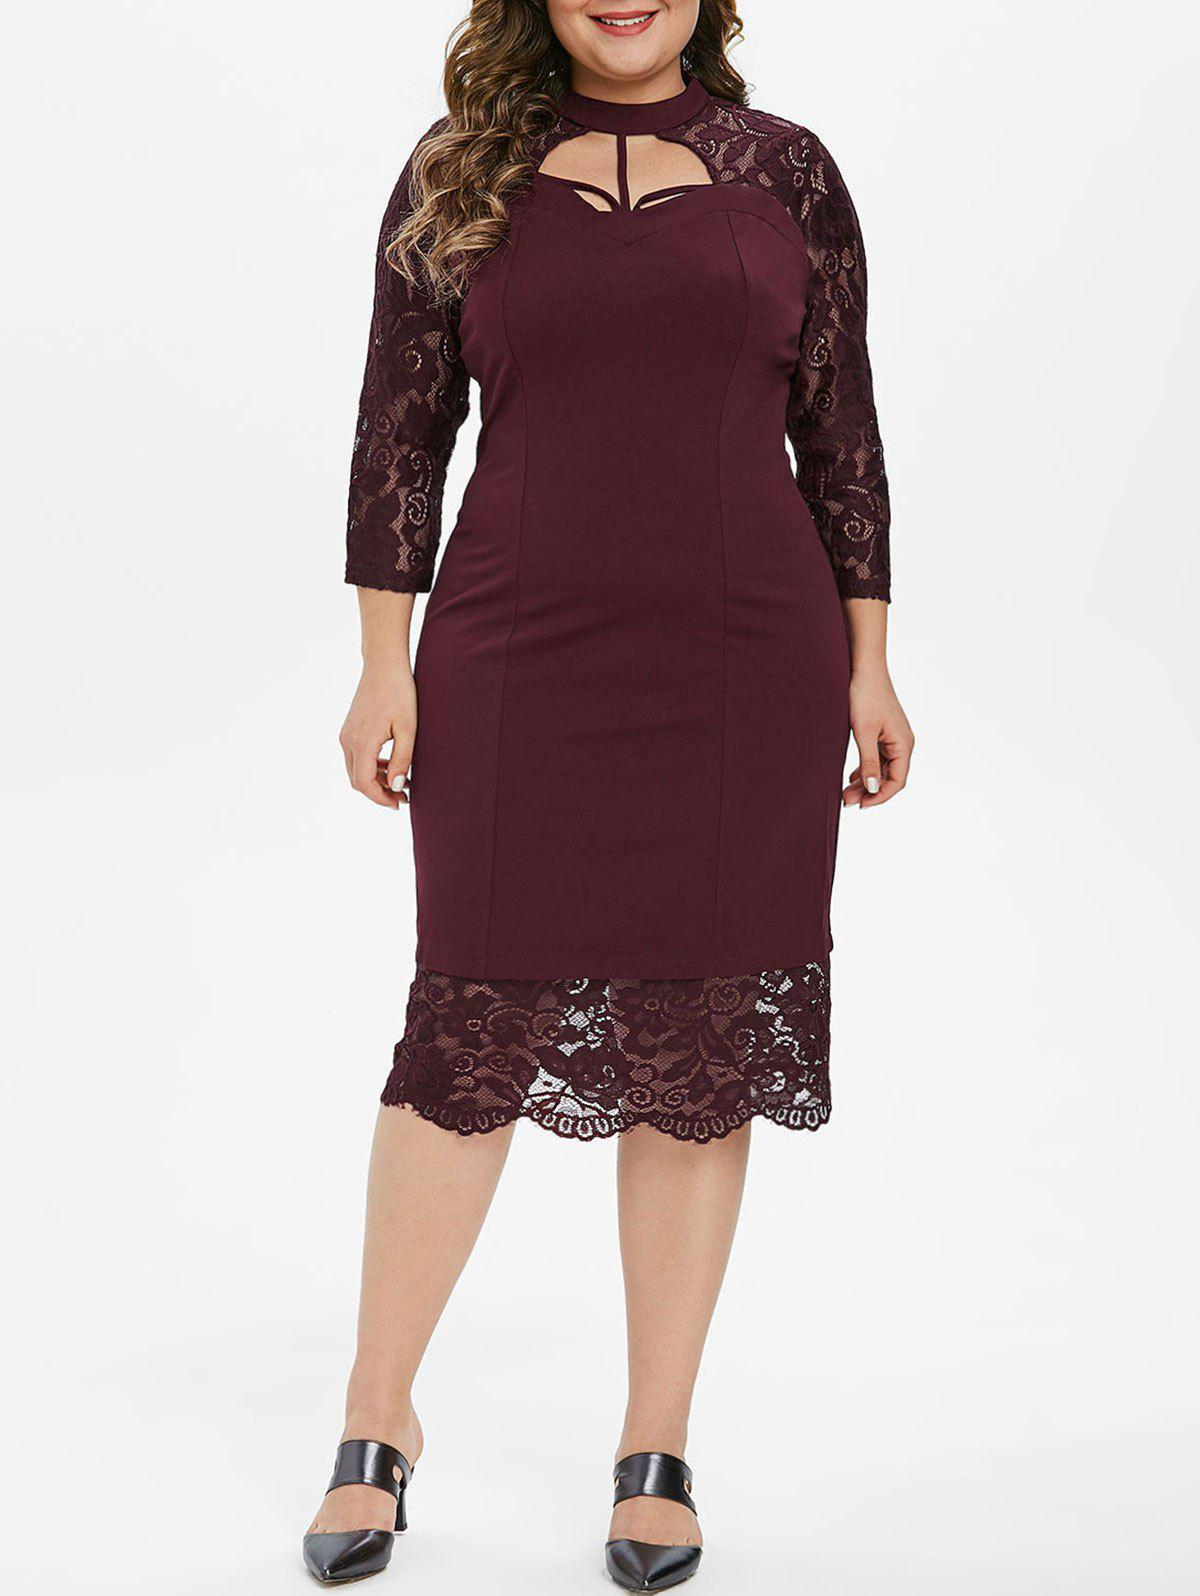 Strappy Cut Out Lace Panel Long Sleeve Plus Size Dress - RED WINE 6X